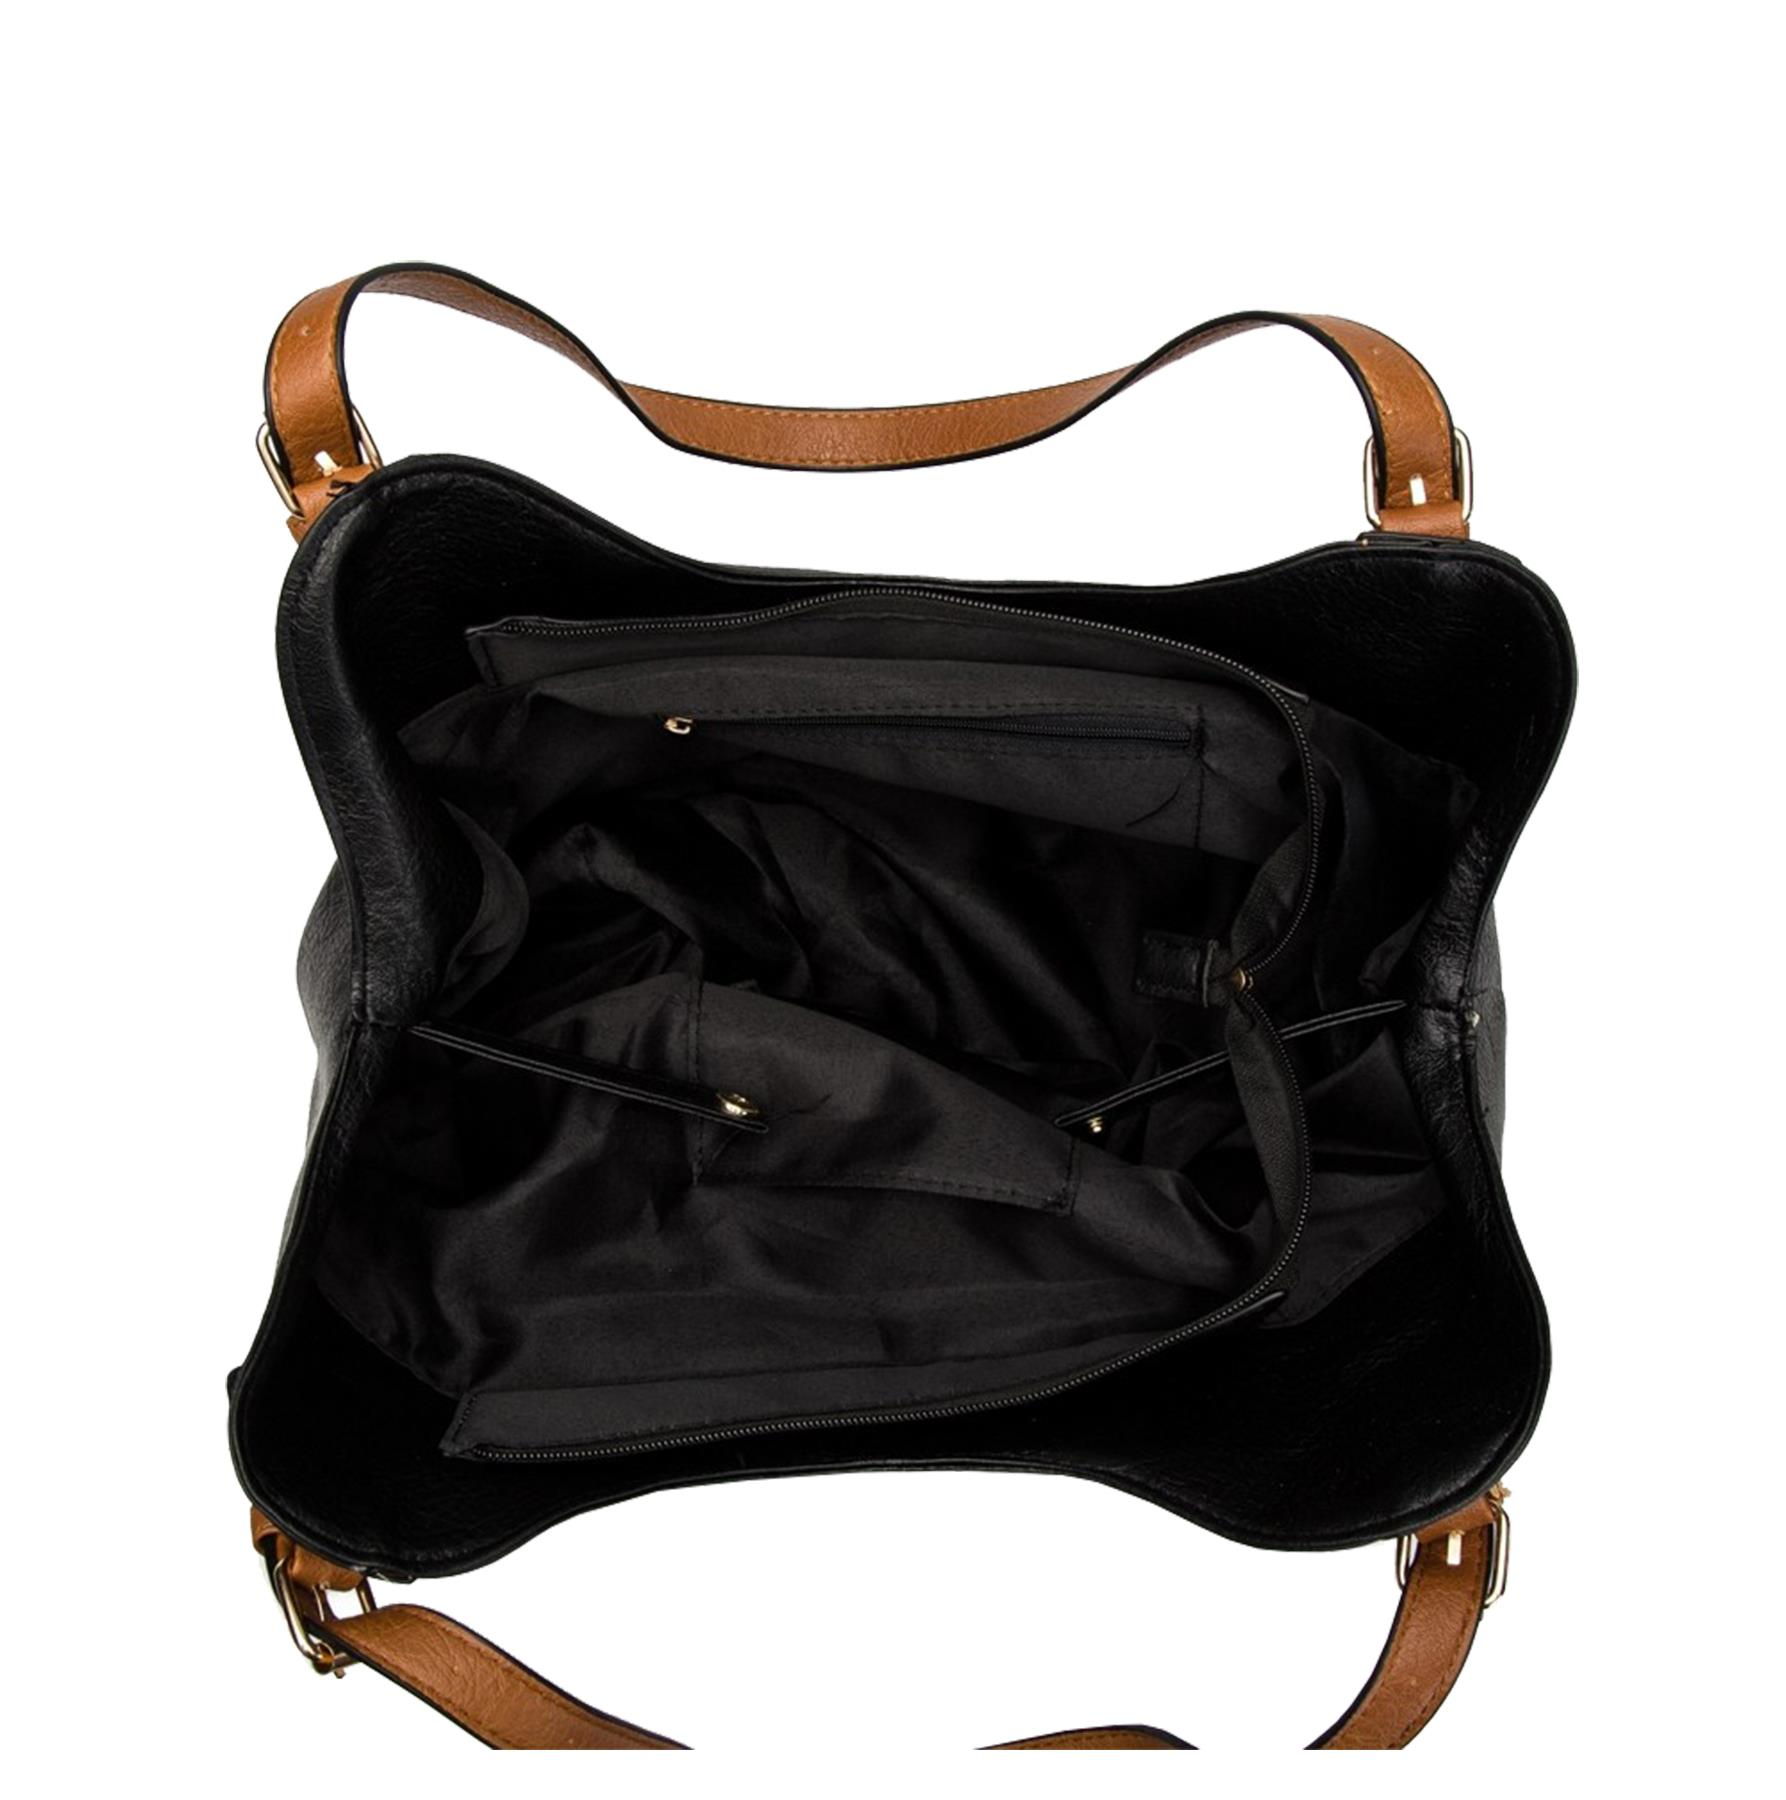 New-Ladies-Buckled-Straps-Two-Toned-Faux-Leather-Slouchy-Shoulder-Bag thumbnail 4